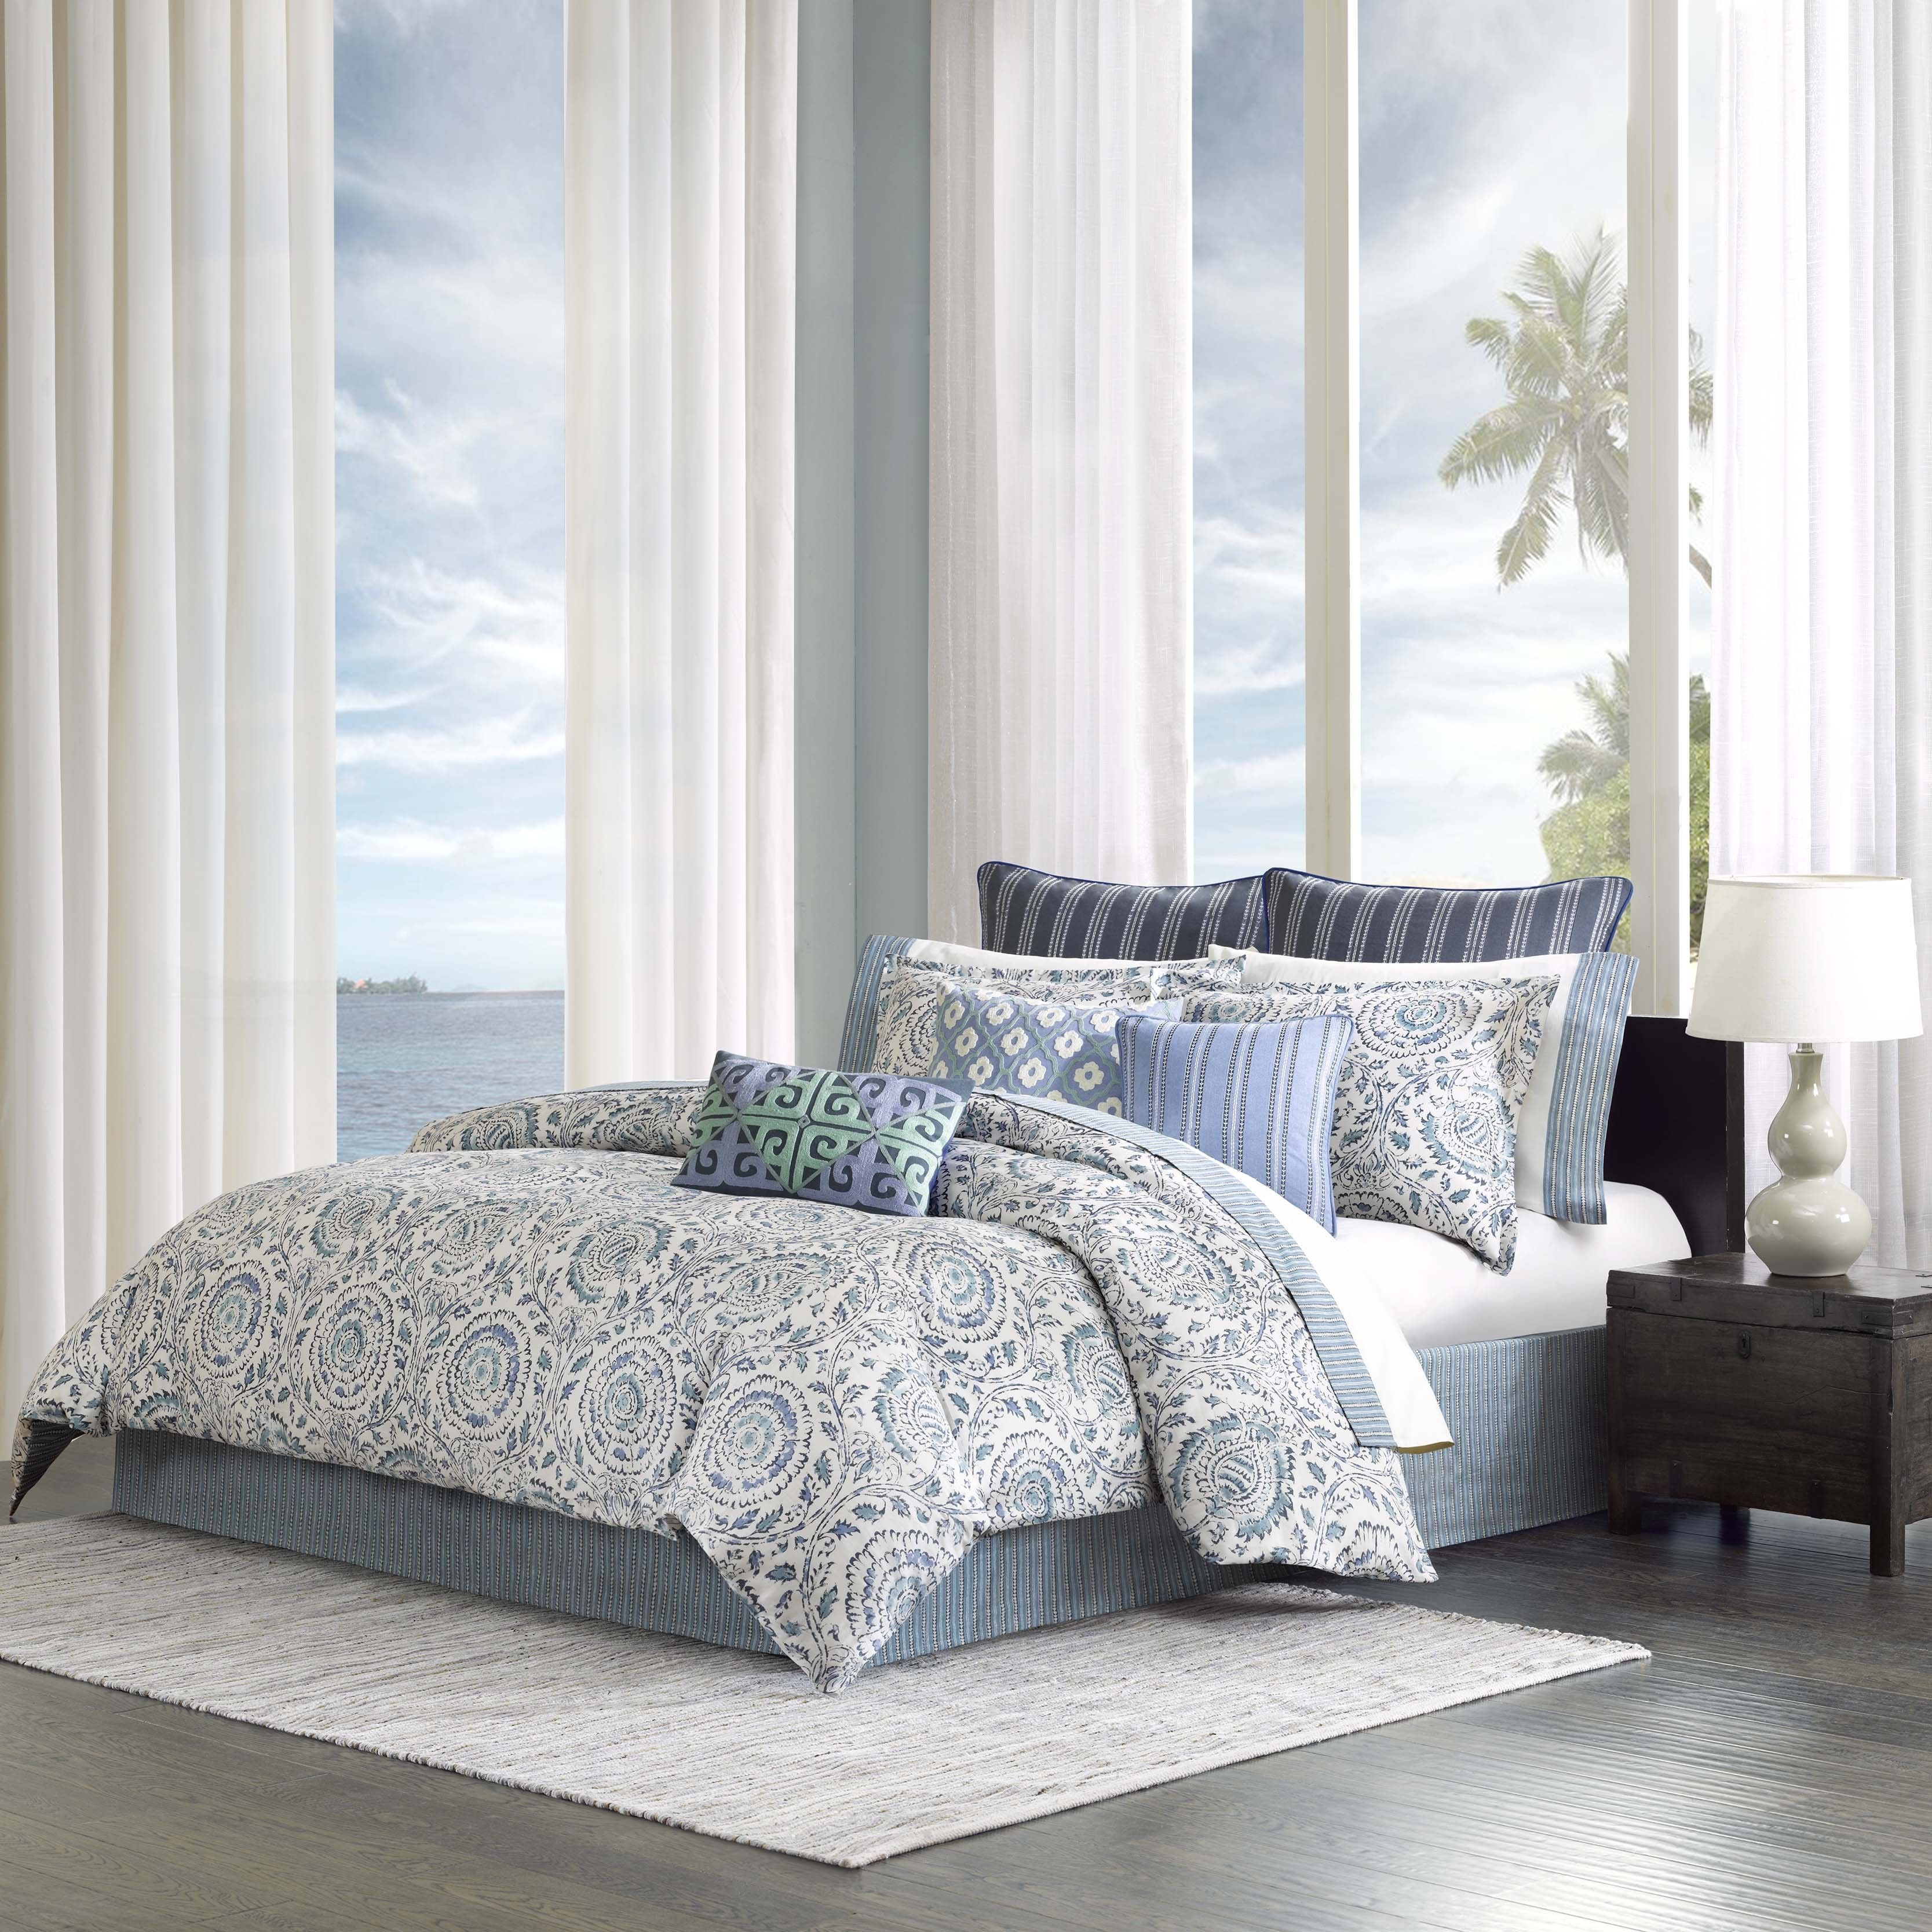 quilt taupe twin k picture sheets nautical bed comforters design bluffton comforter black bedding ar set nautica clearance ravn sale reversible king outstanding striking quilted sets xl